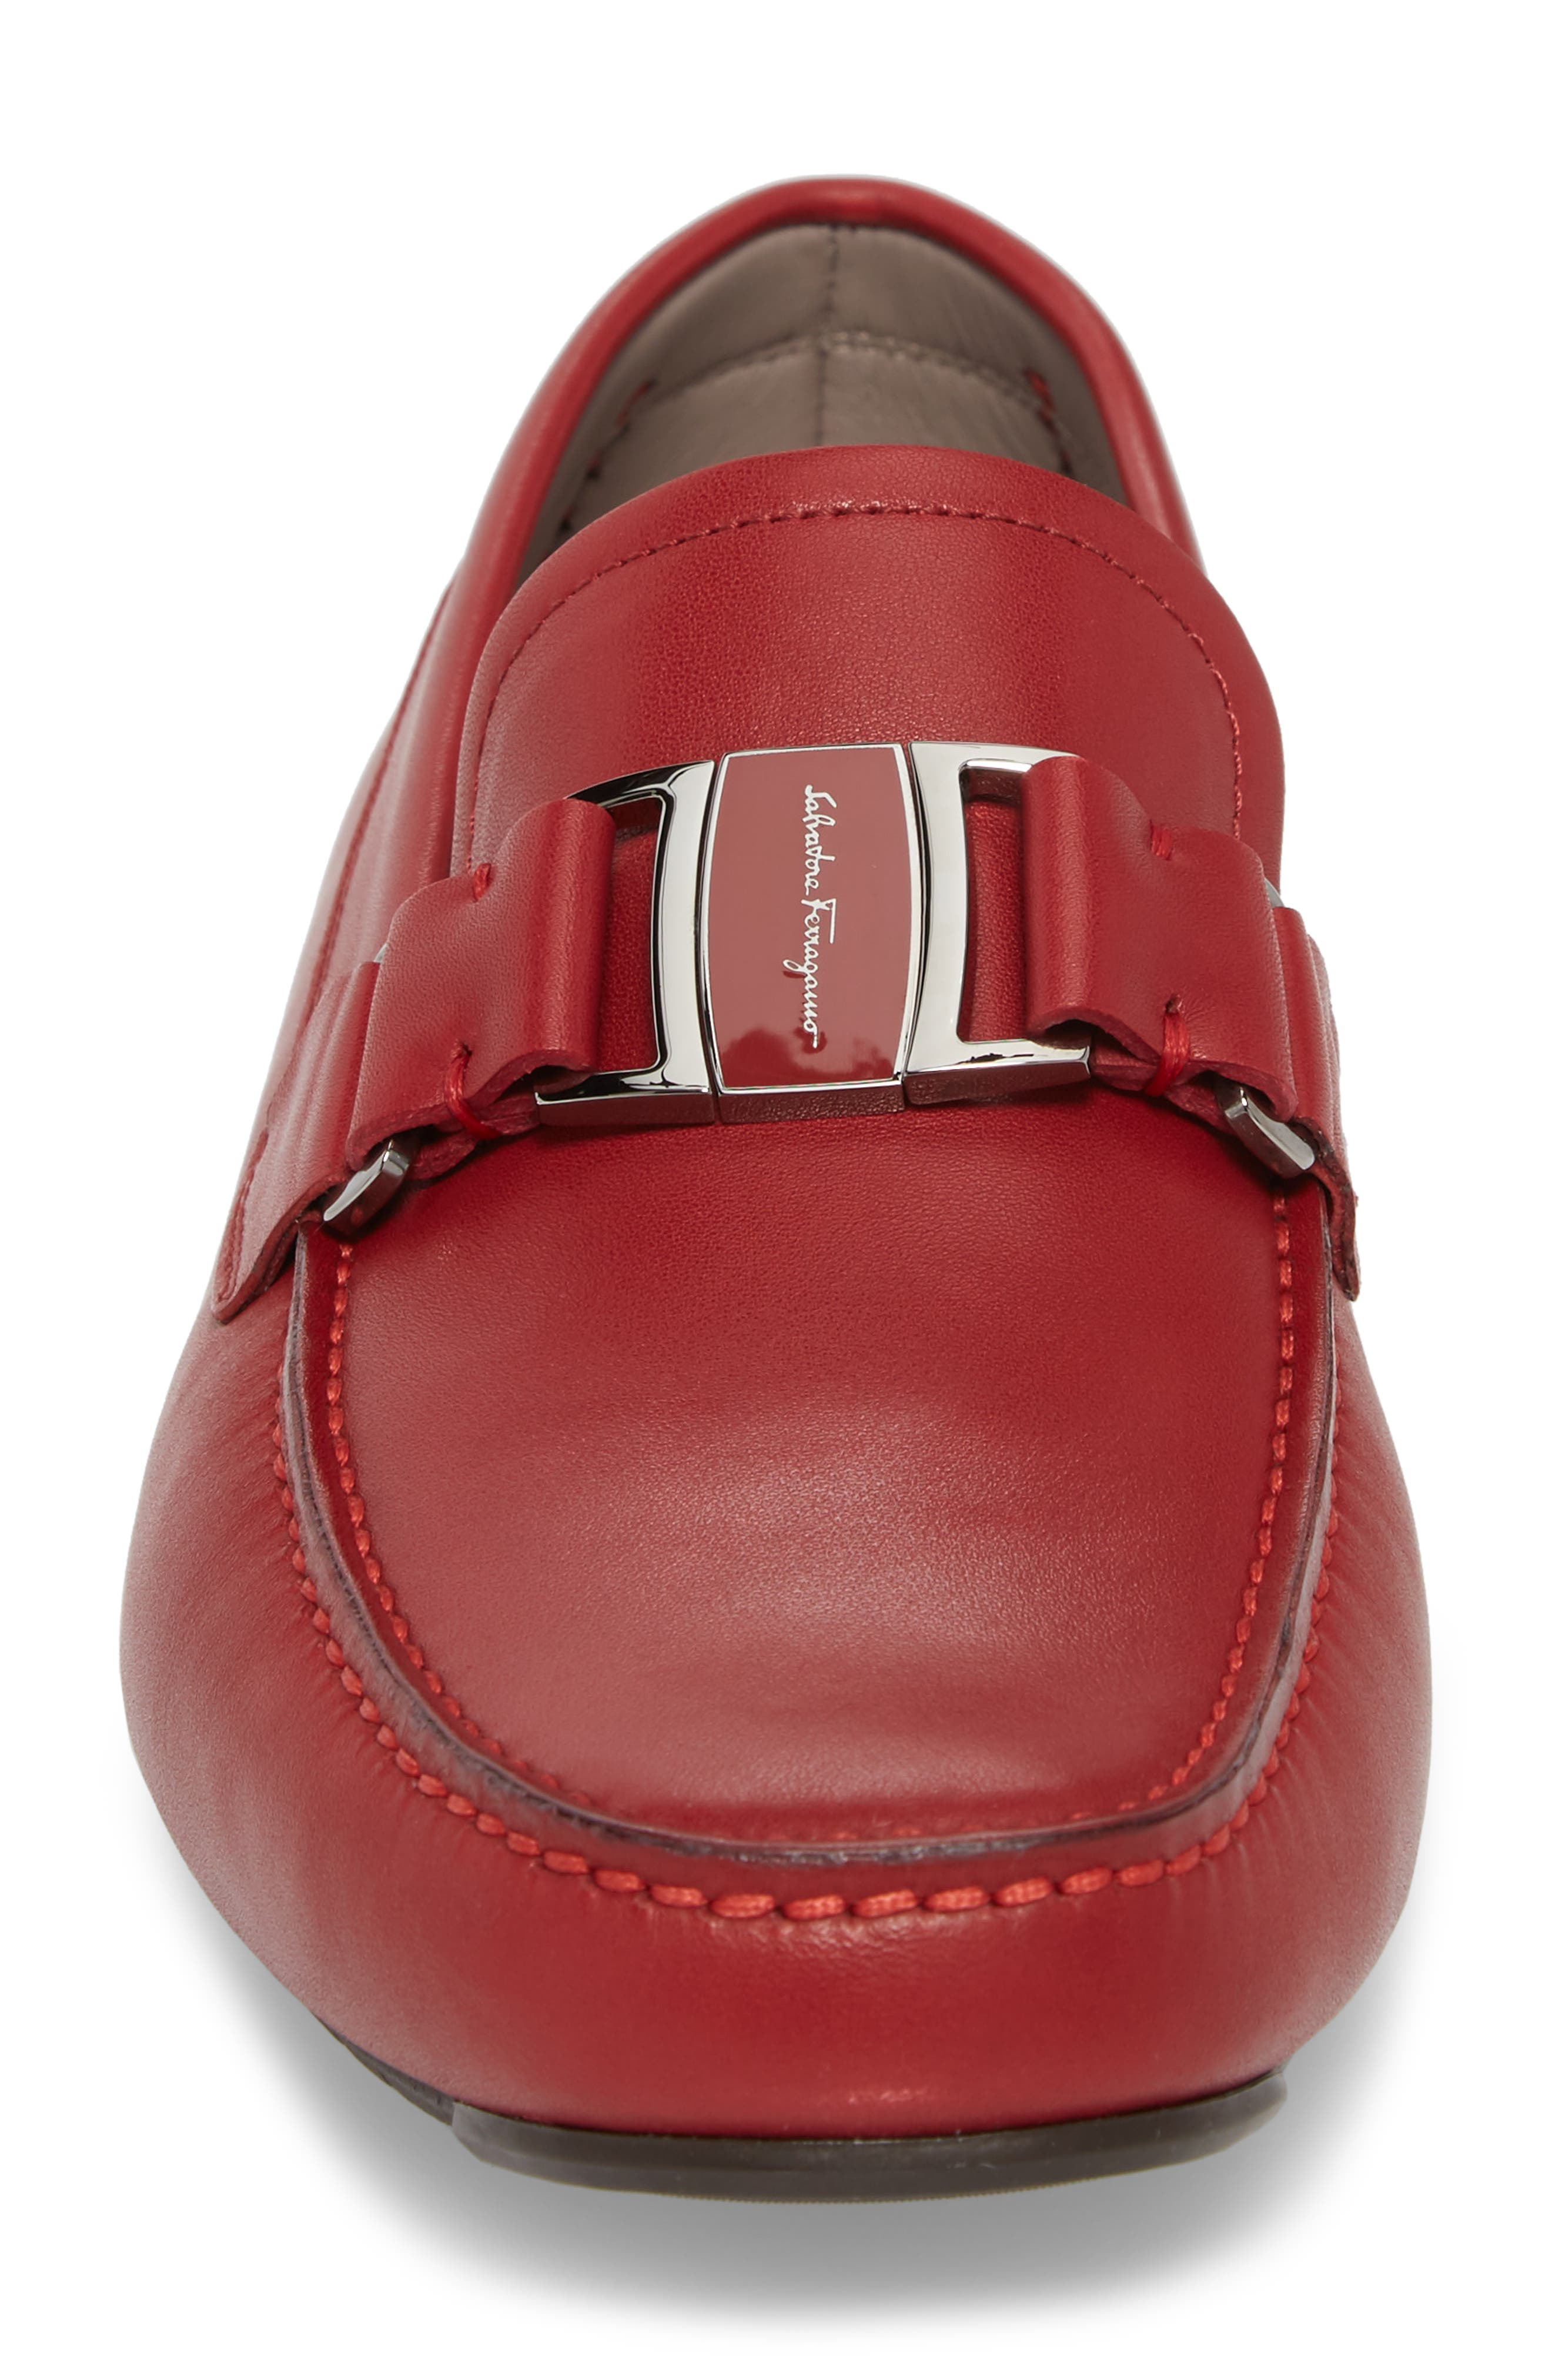 Sardegna Driving Shoe,                             Alternate thumbnail 4, color,                             Red Leather